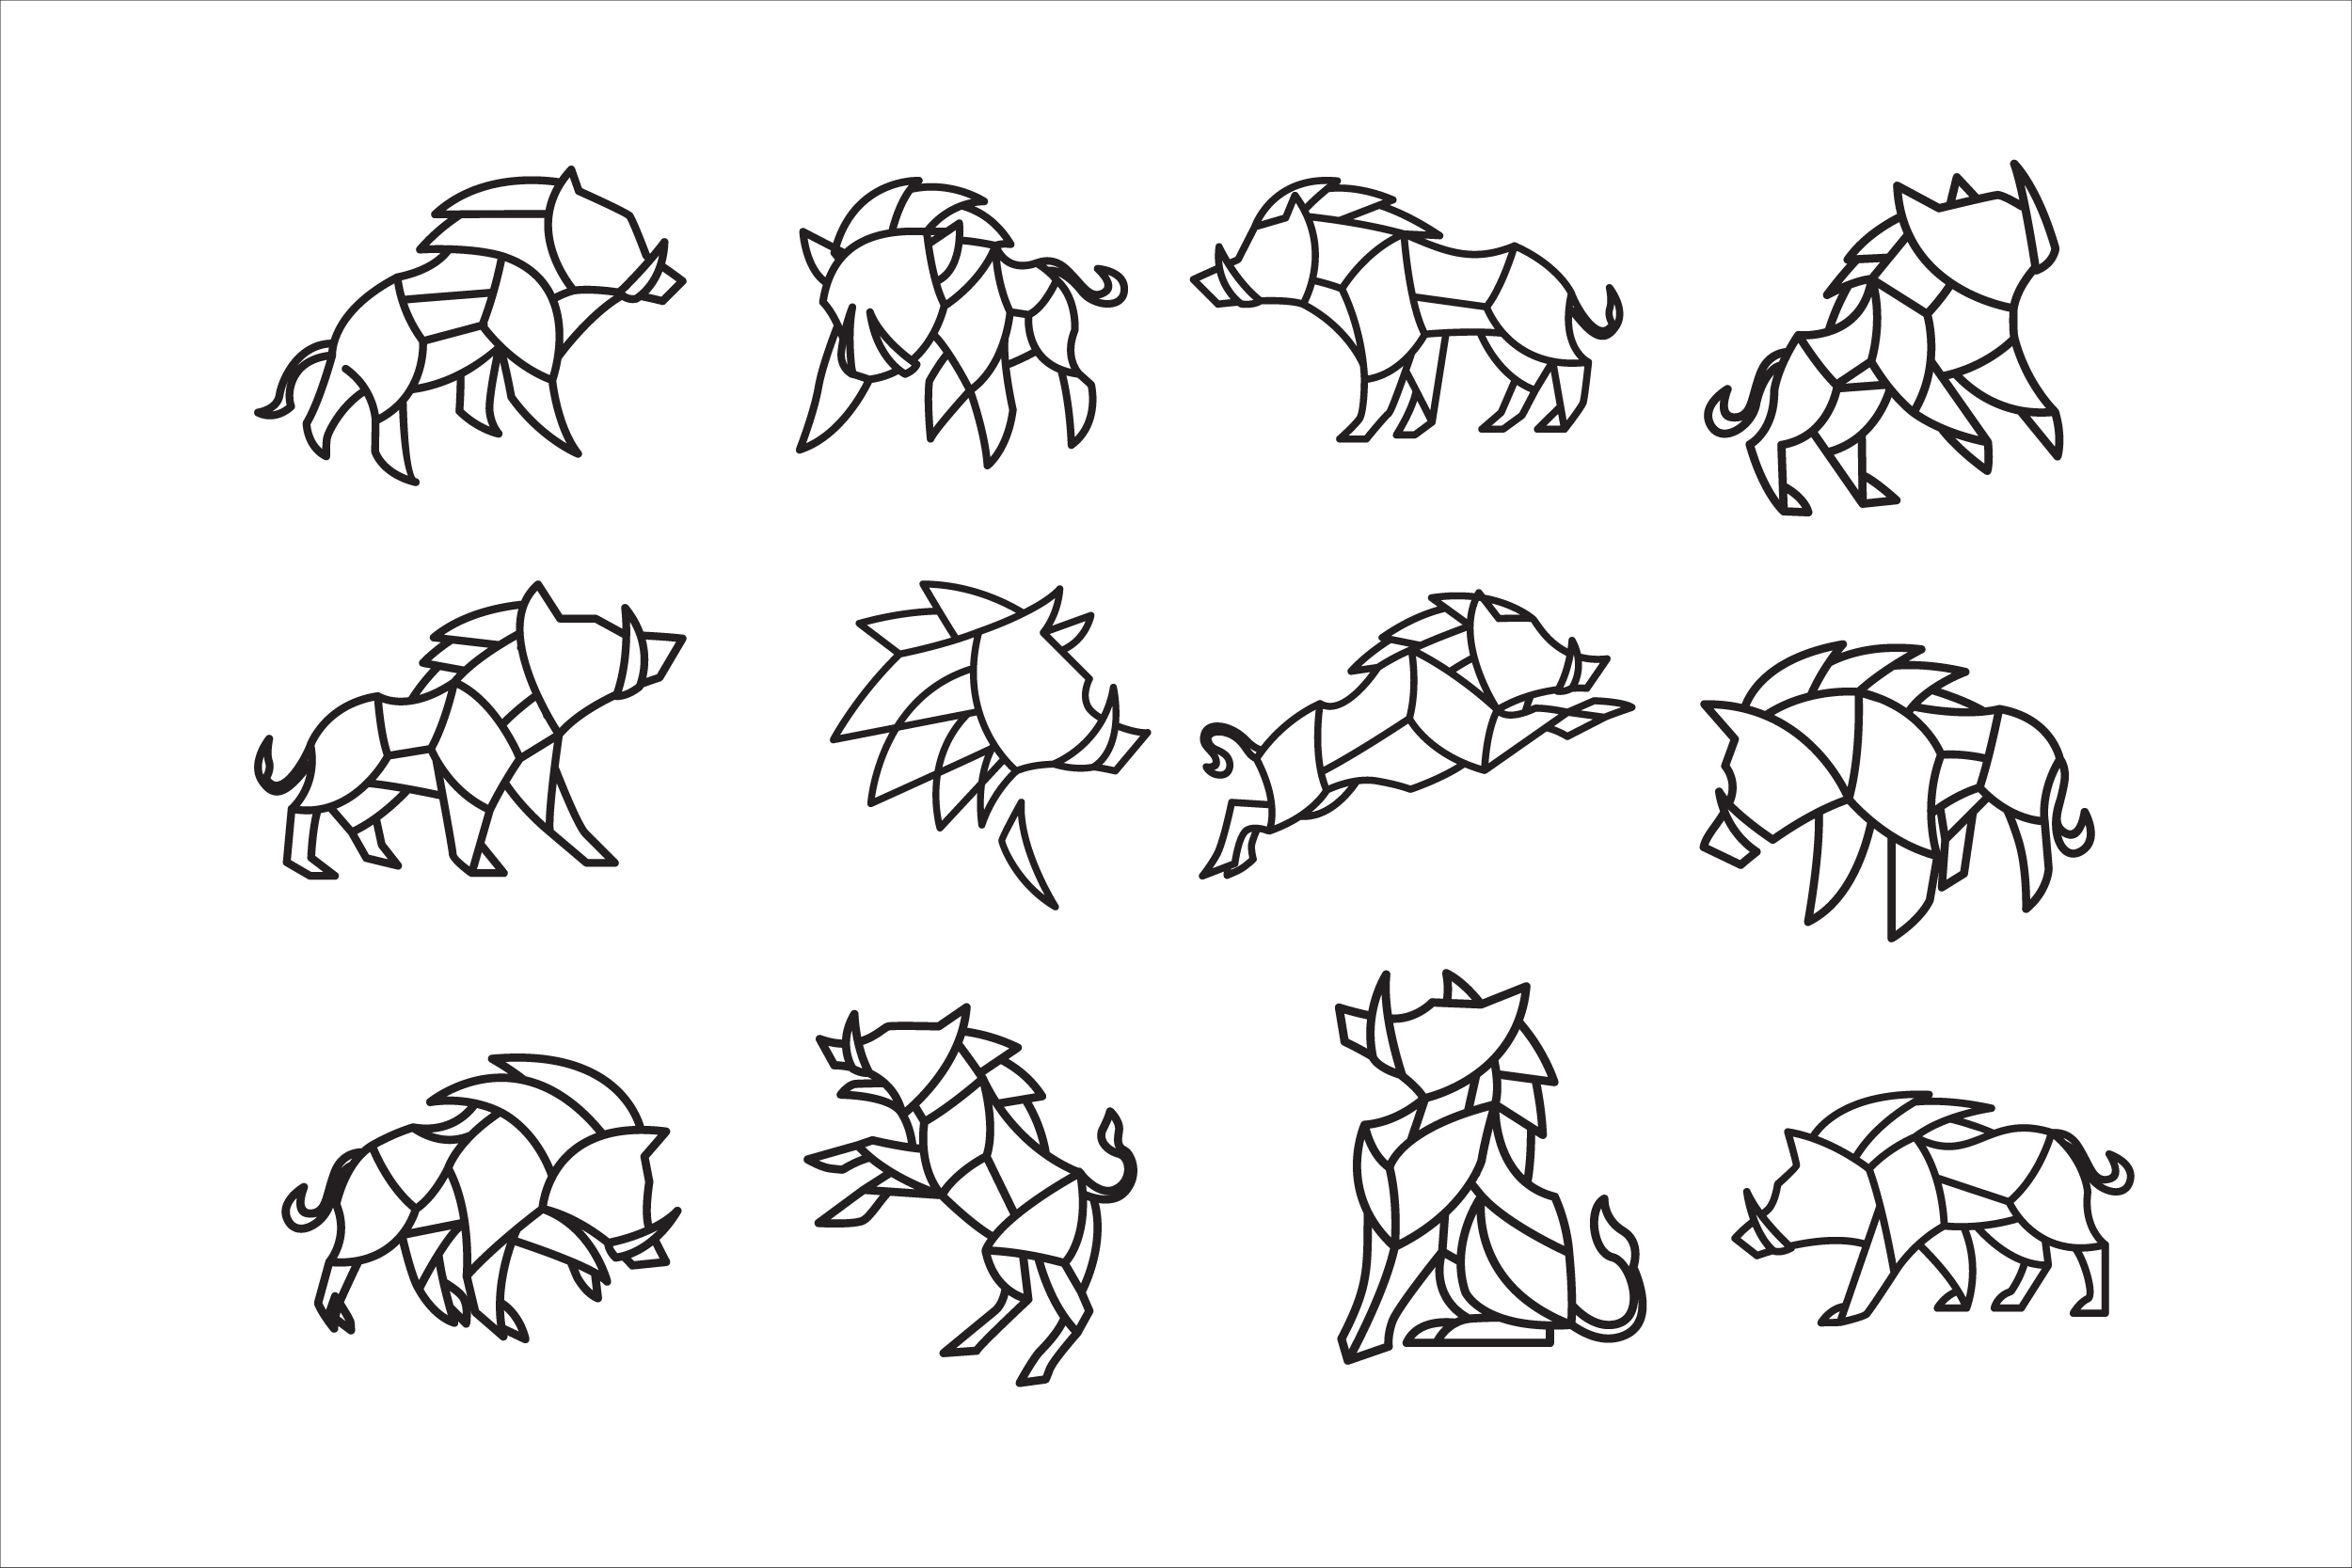 Download Free Pack Of Geometric Boar Vector Templates Graphic By Aksa Inov008 for Cricut Explore, Silhouette and other cutting machines.